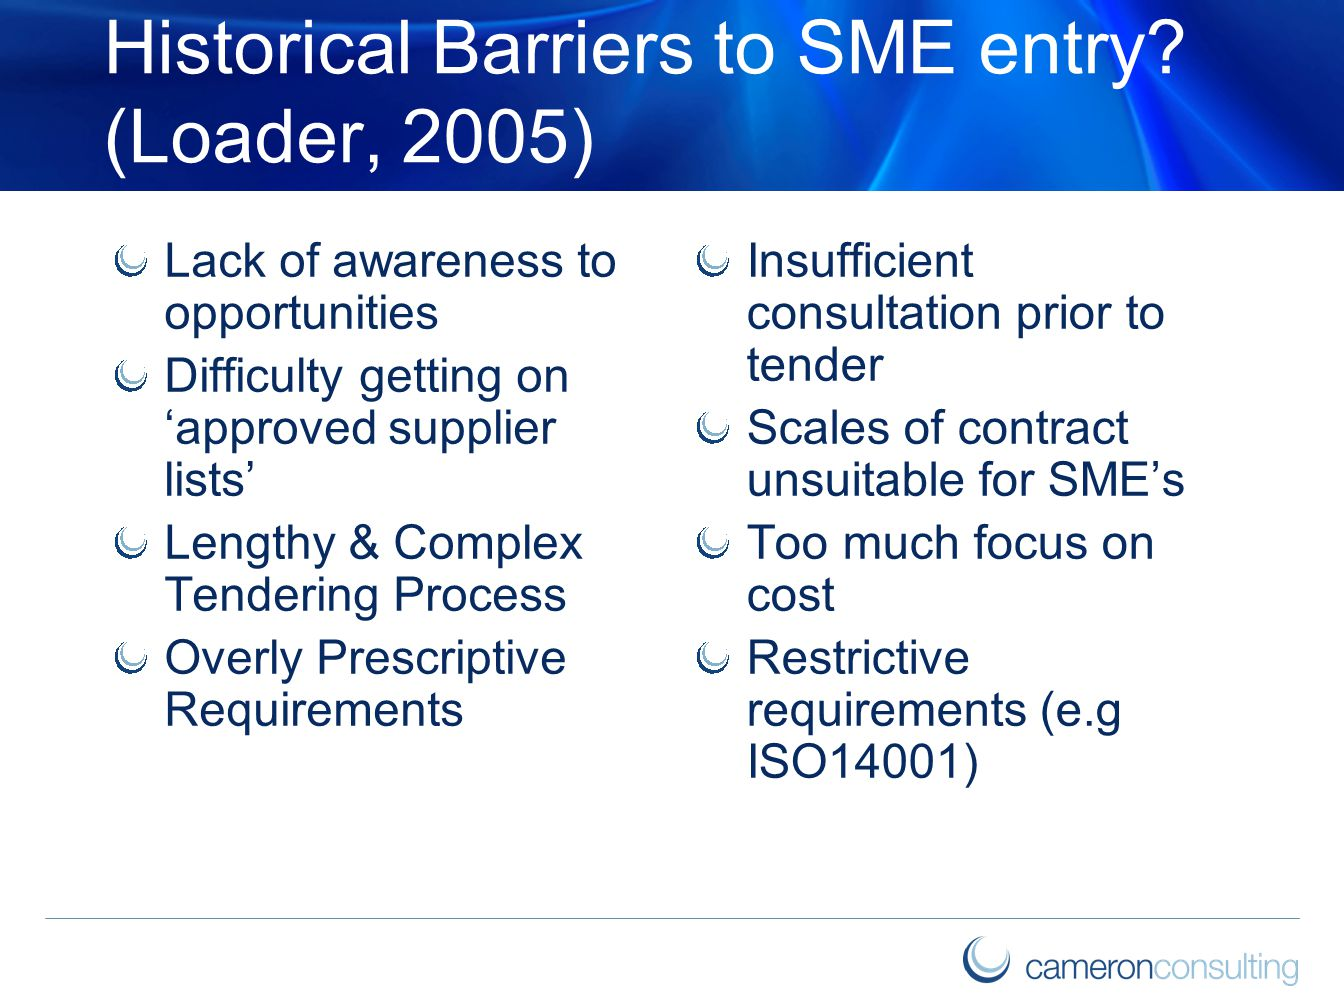 Historical Barriers to SME entry? (Loader, 2005) Lack of awareness to opportunities Difficulty getting on 'approved supplier lists' Lengthy & Complex